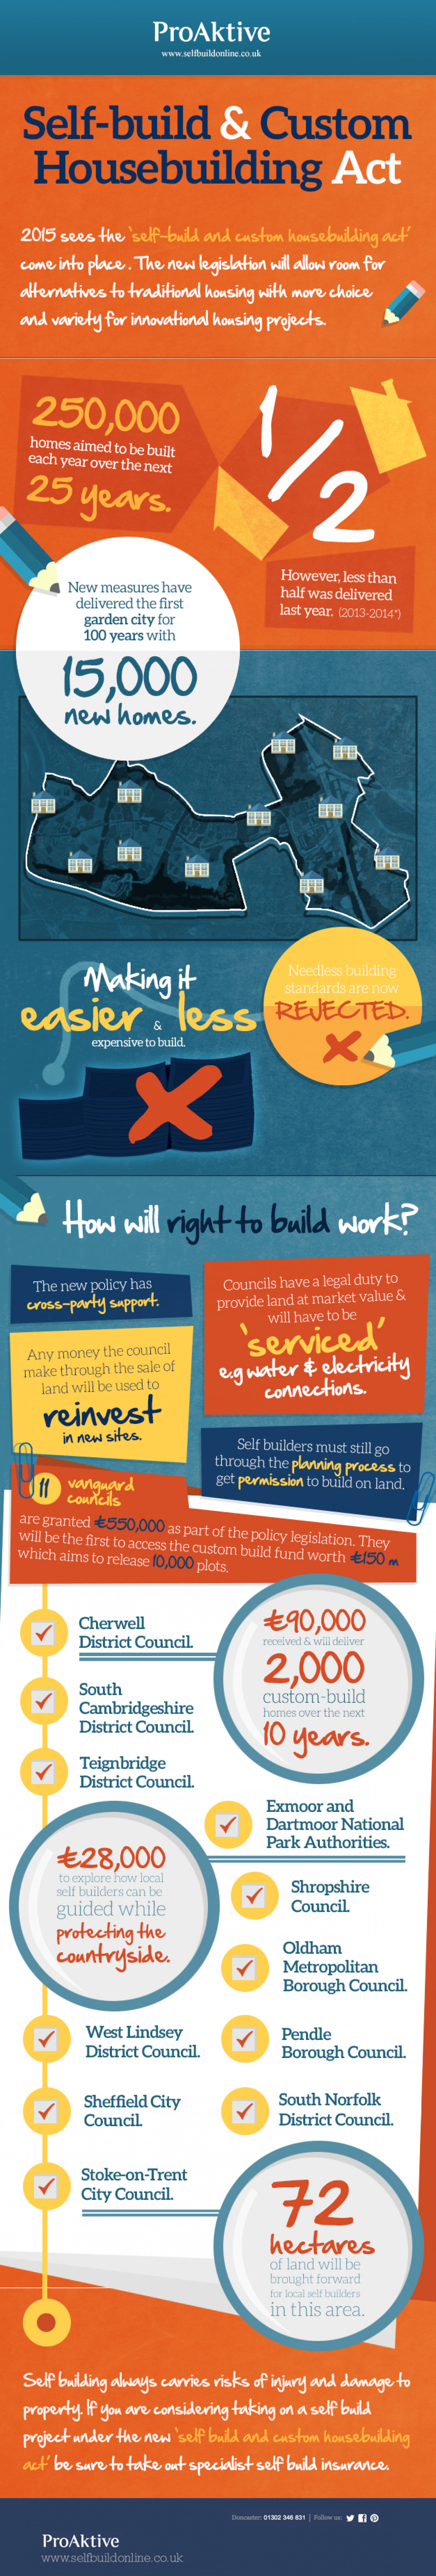 Self-build & Custom Housebuilding Act Infographic